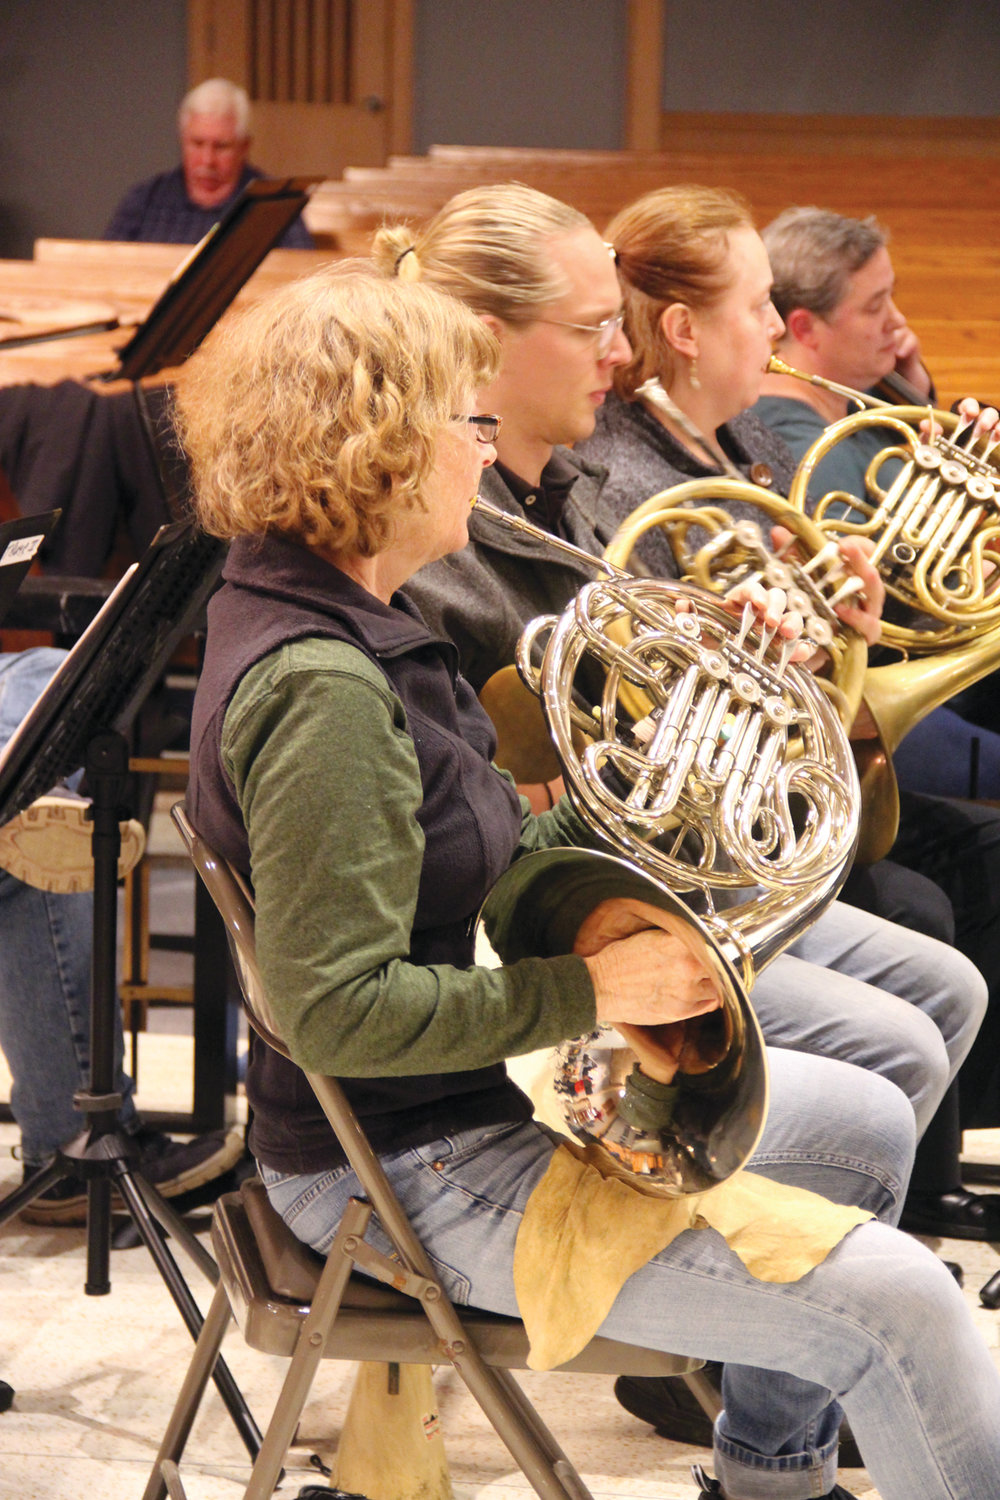 BRING ON THE BRASS: Susan Shippee, Benjamin Franzblau and Susan Wintorbottom rehearse for the upcoming Ocean State Pops Orchestra concerts that will bring together more than 100 musicians and singers from across the state.